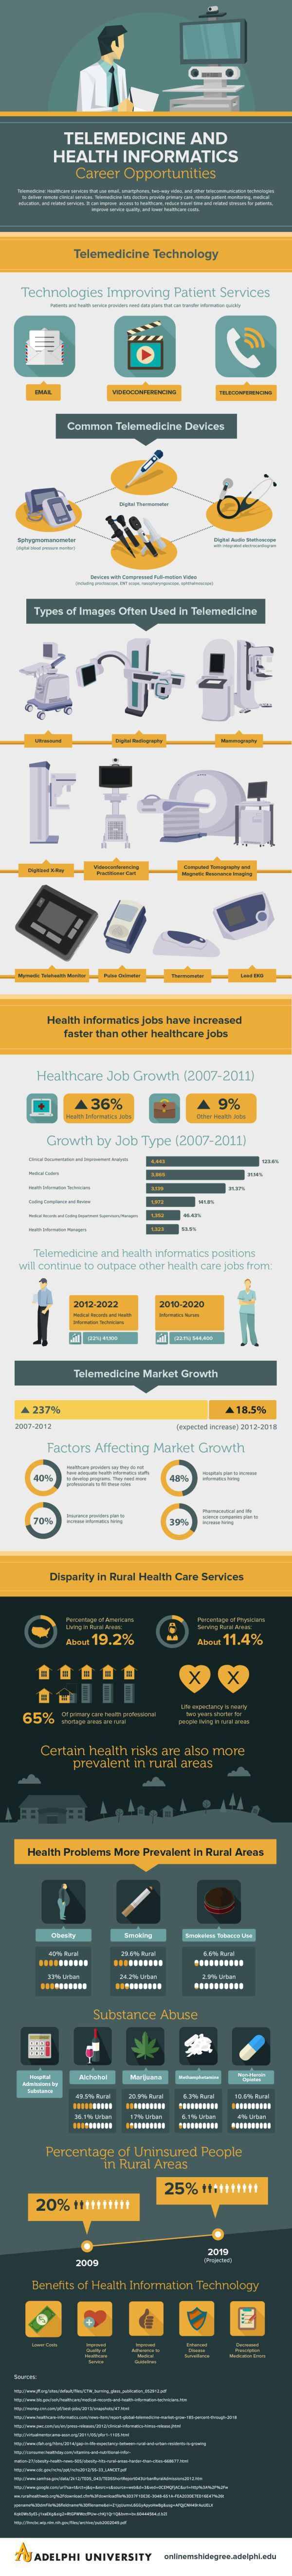 Telemedicine and heatlh informatics | Repinned by @emilyslutsky